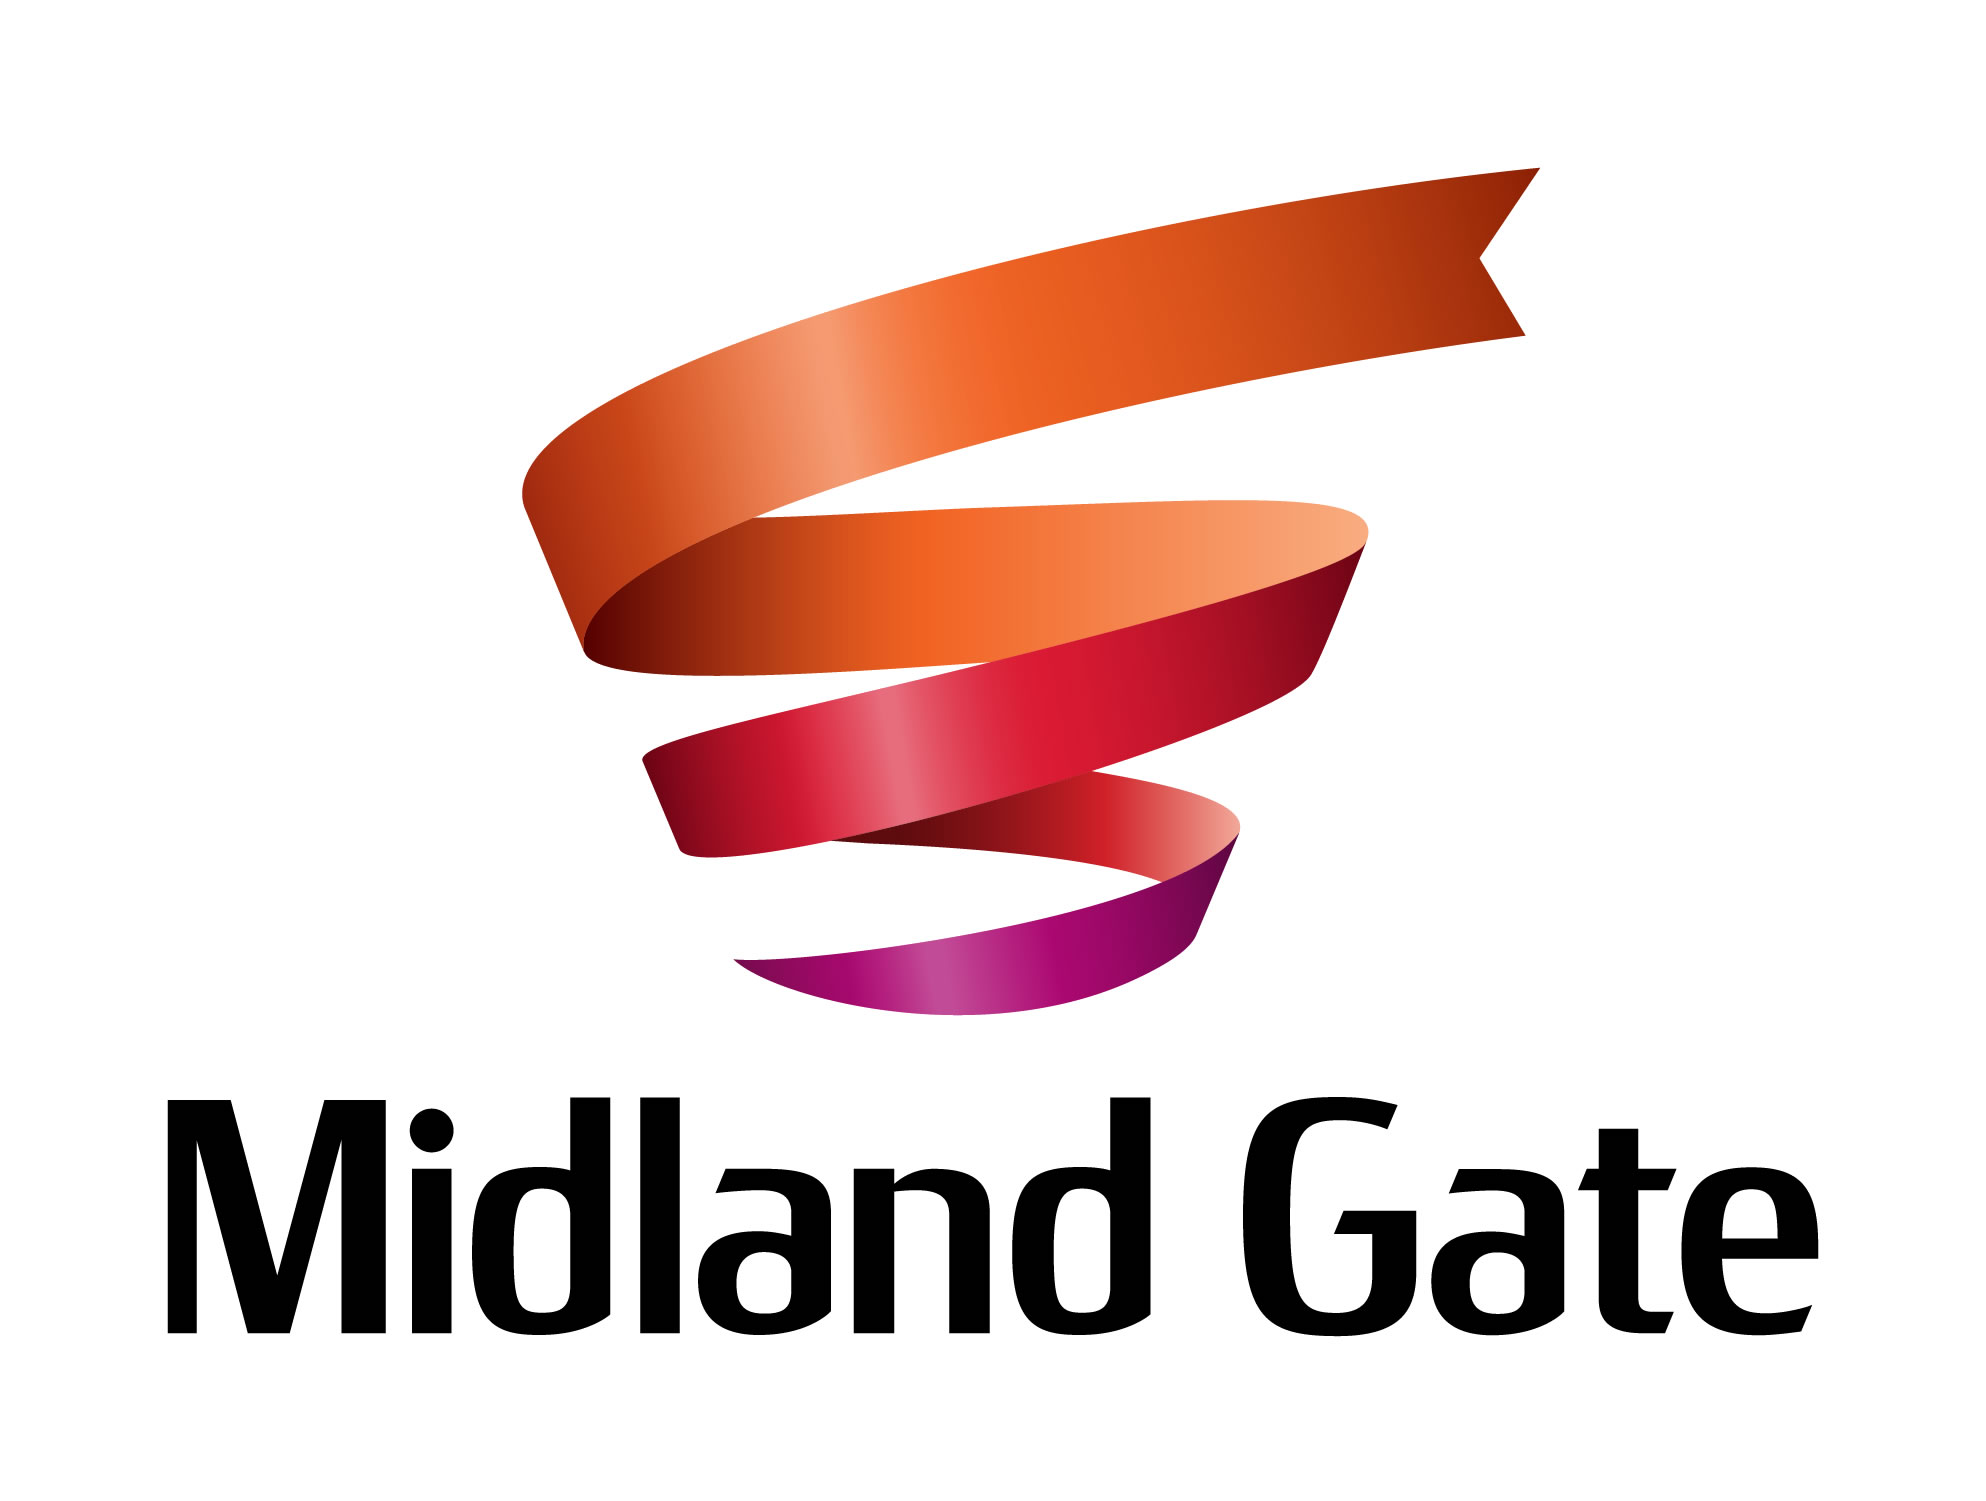 Midland Gate logo_red ribbon_VER.jpg